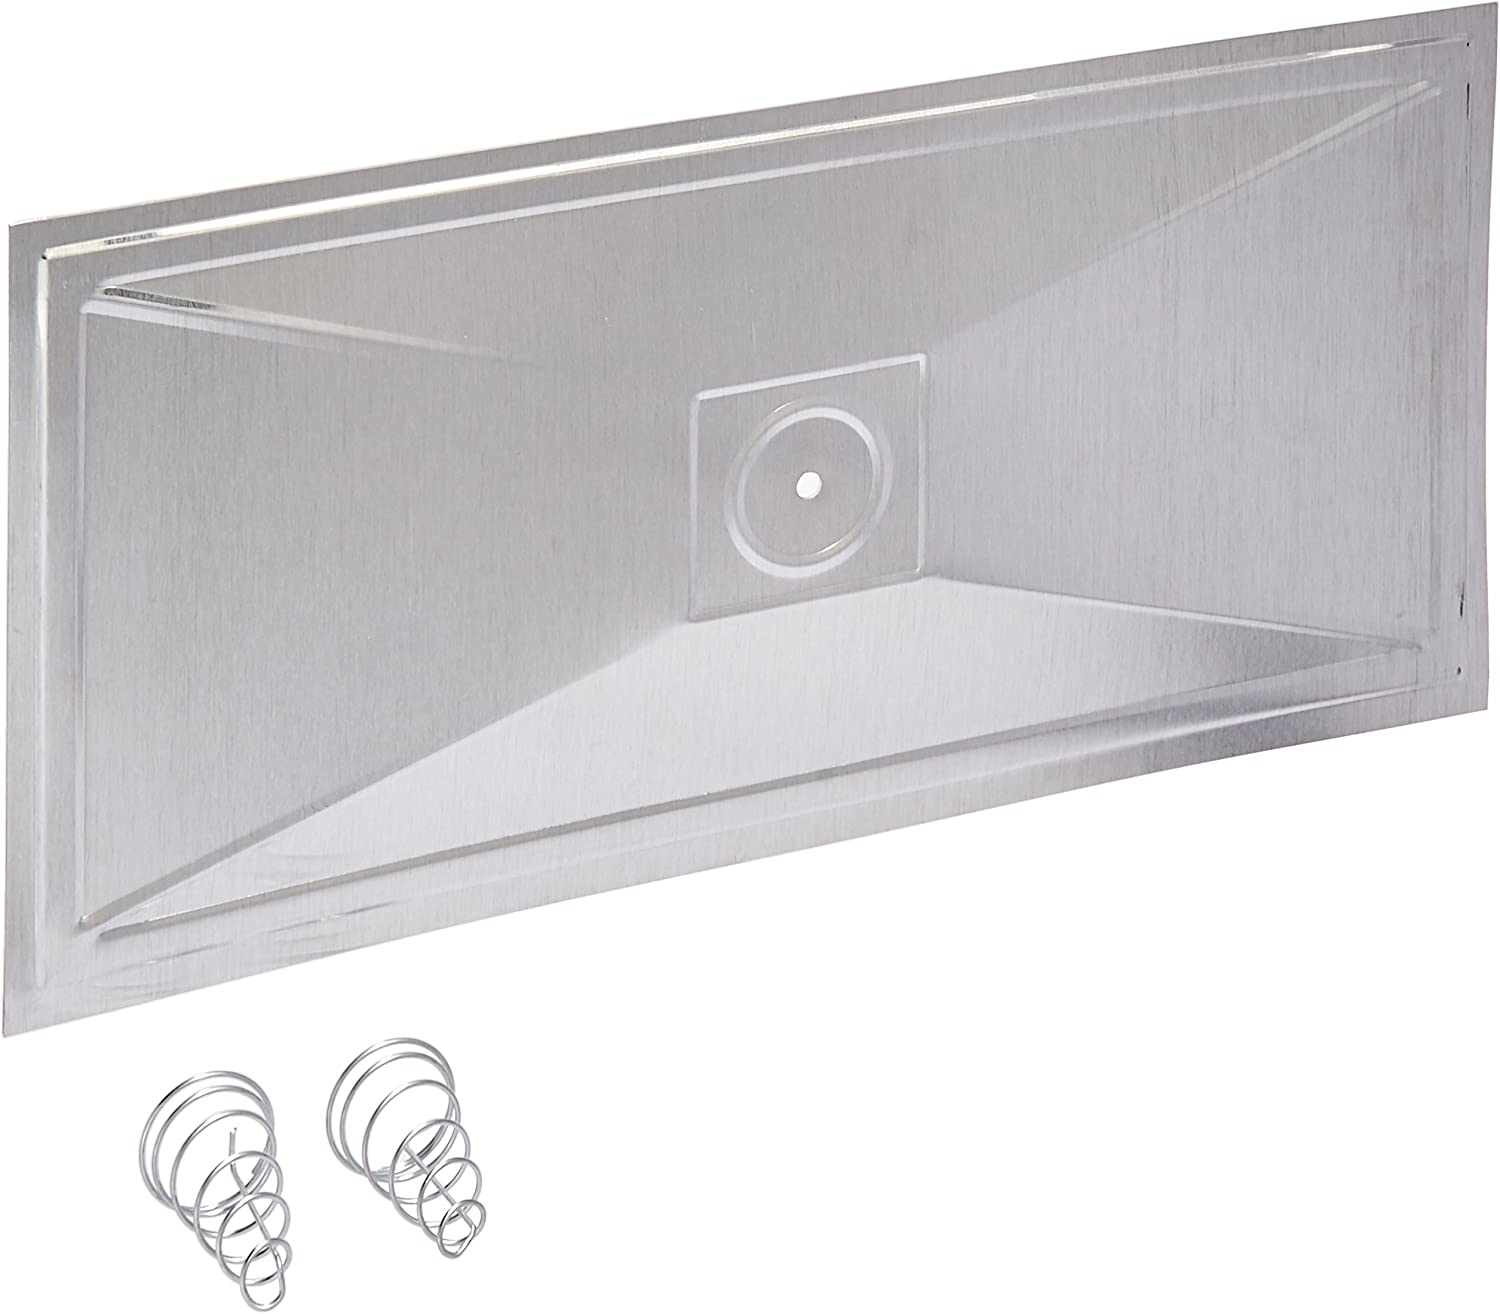 Max 73% OFF LL BUILDING PRODUCTS FVC 168 Vent 2PK Cover Found Ranking TOP11